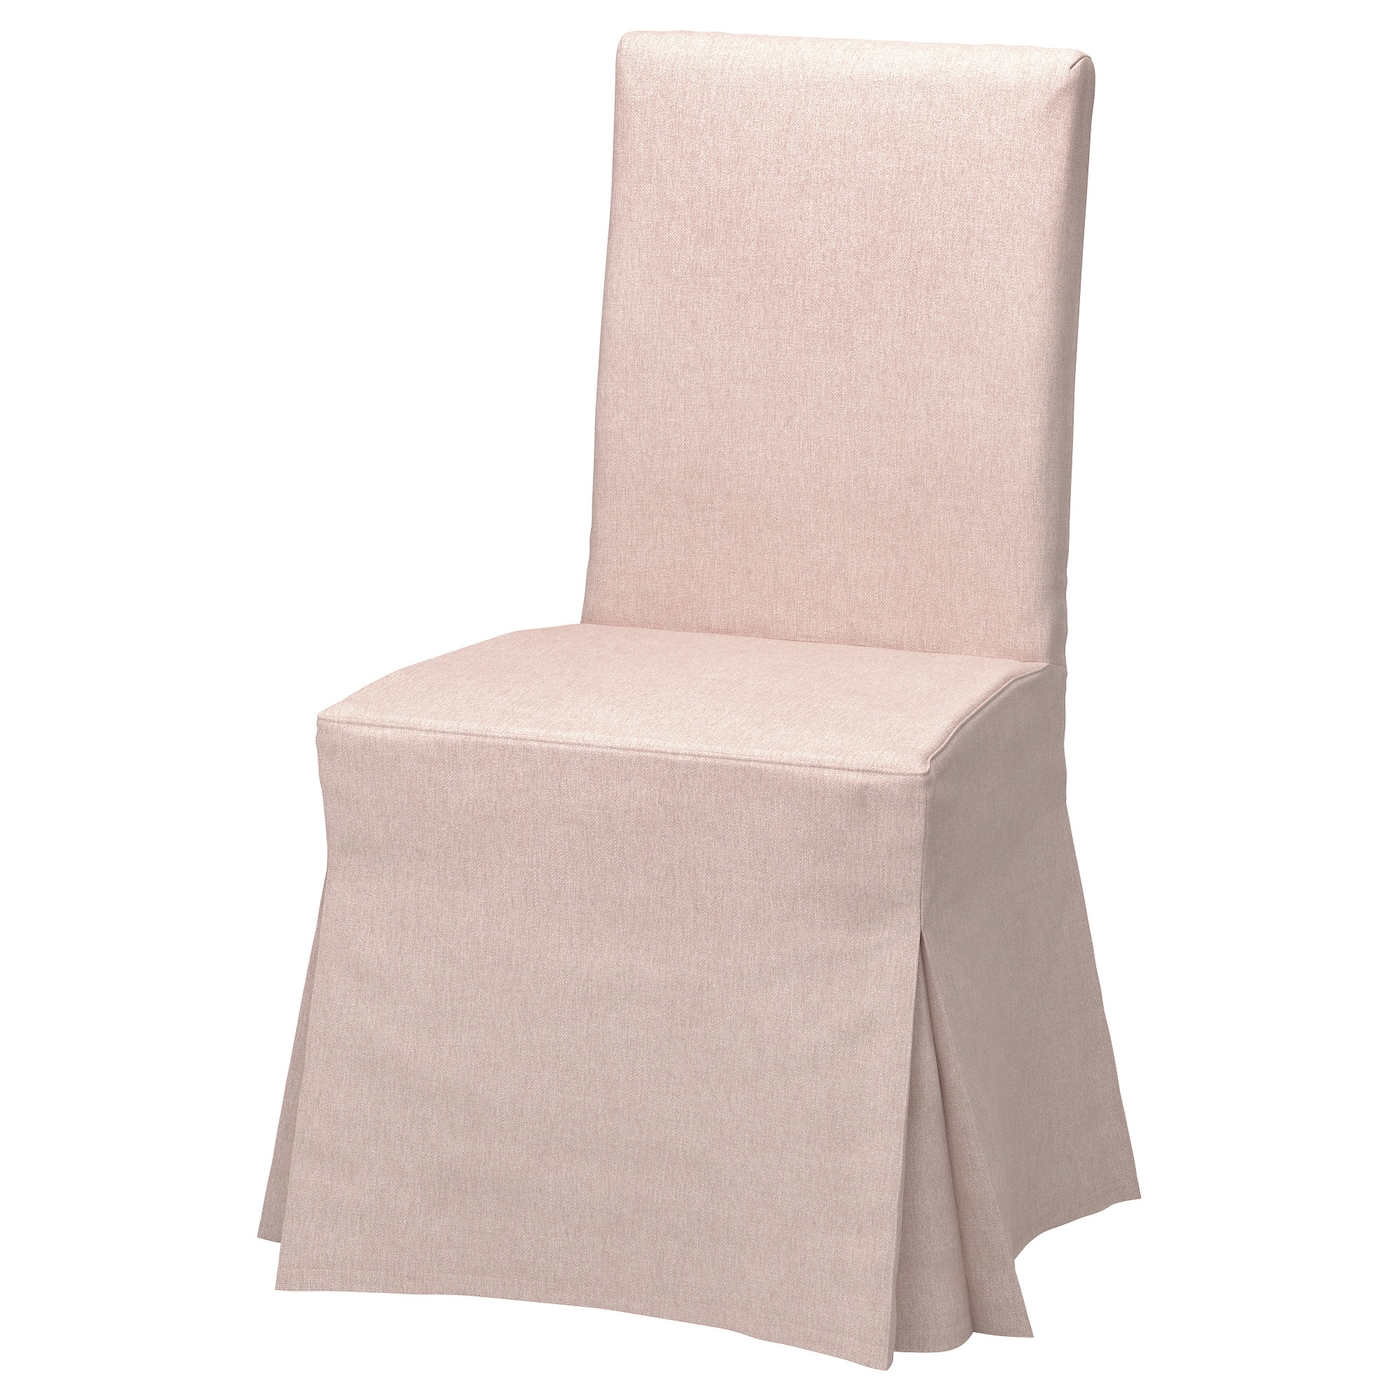 Dining chair covers ikea dublin ireland - Housse de chaises ikea ...